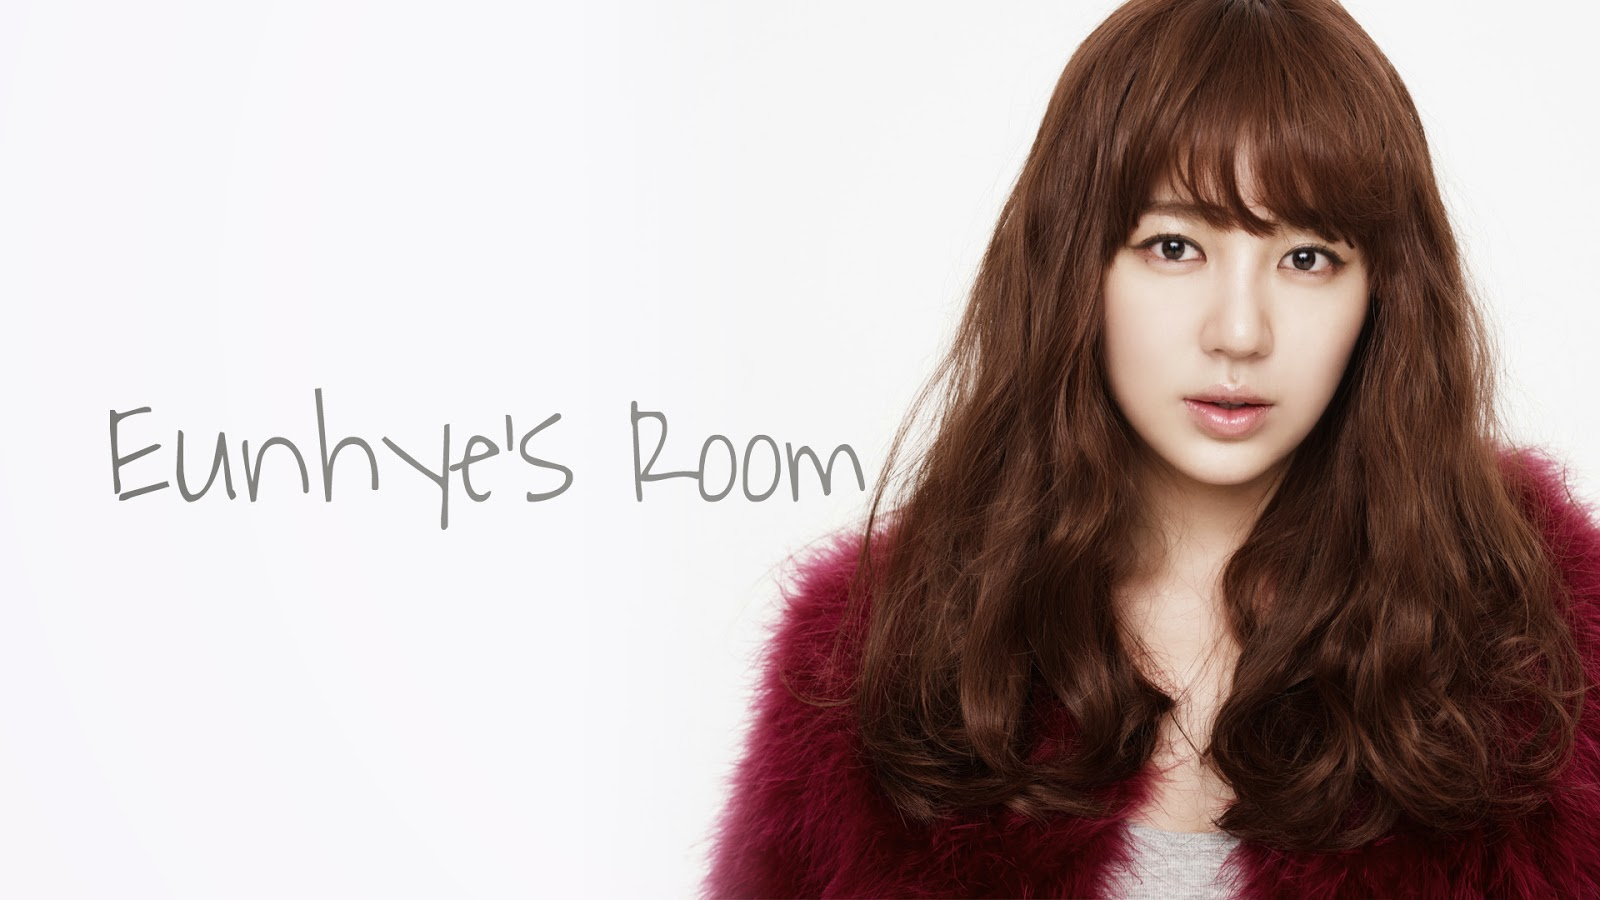 Yoon Eun Hye Wallpaper HD Your Title